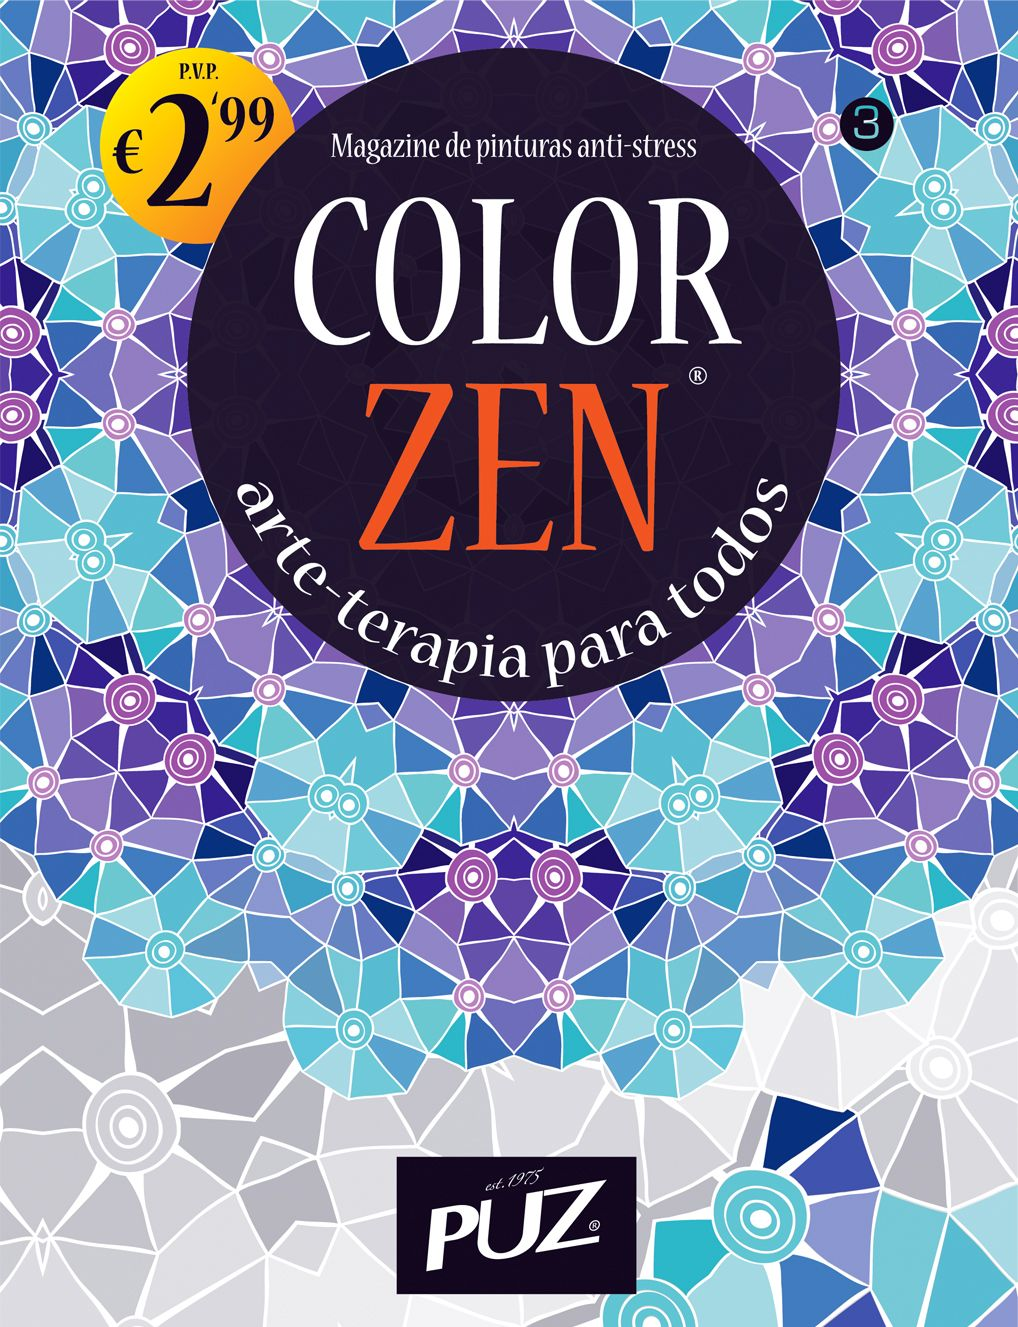 Color zen magazine - Color Zen Nr 3 Magazine De Pinturas Anti Stress Da Puz Arte